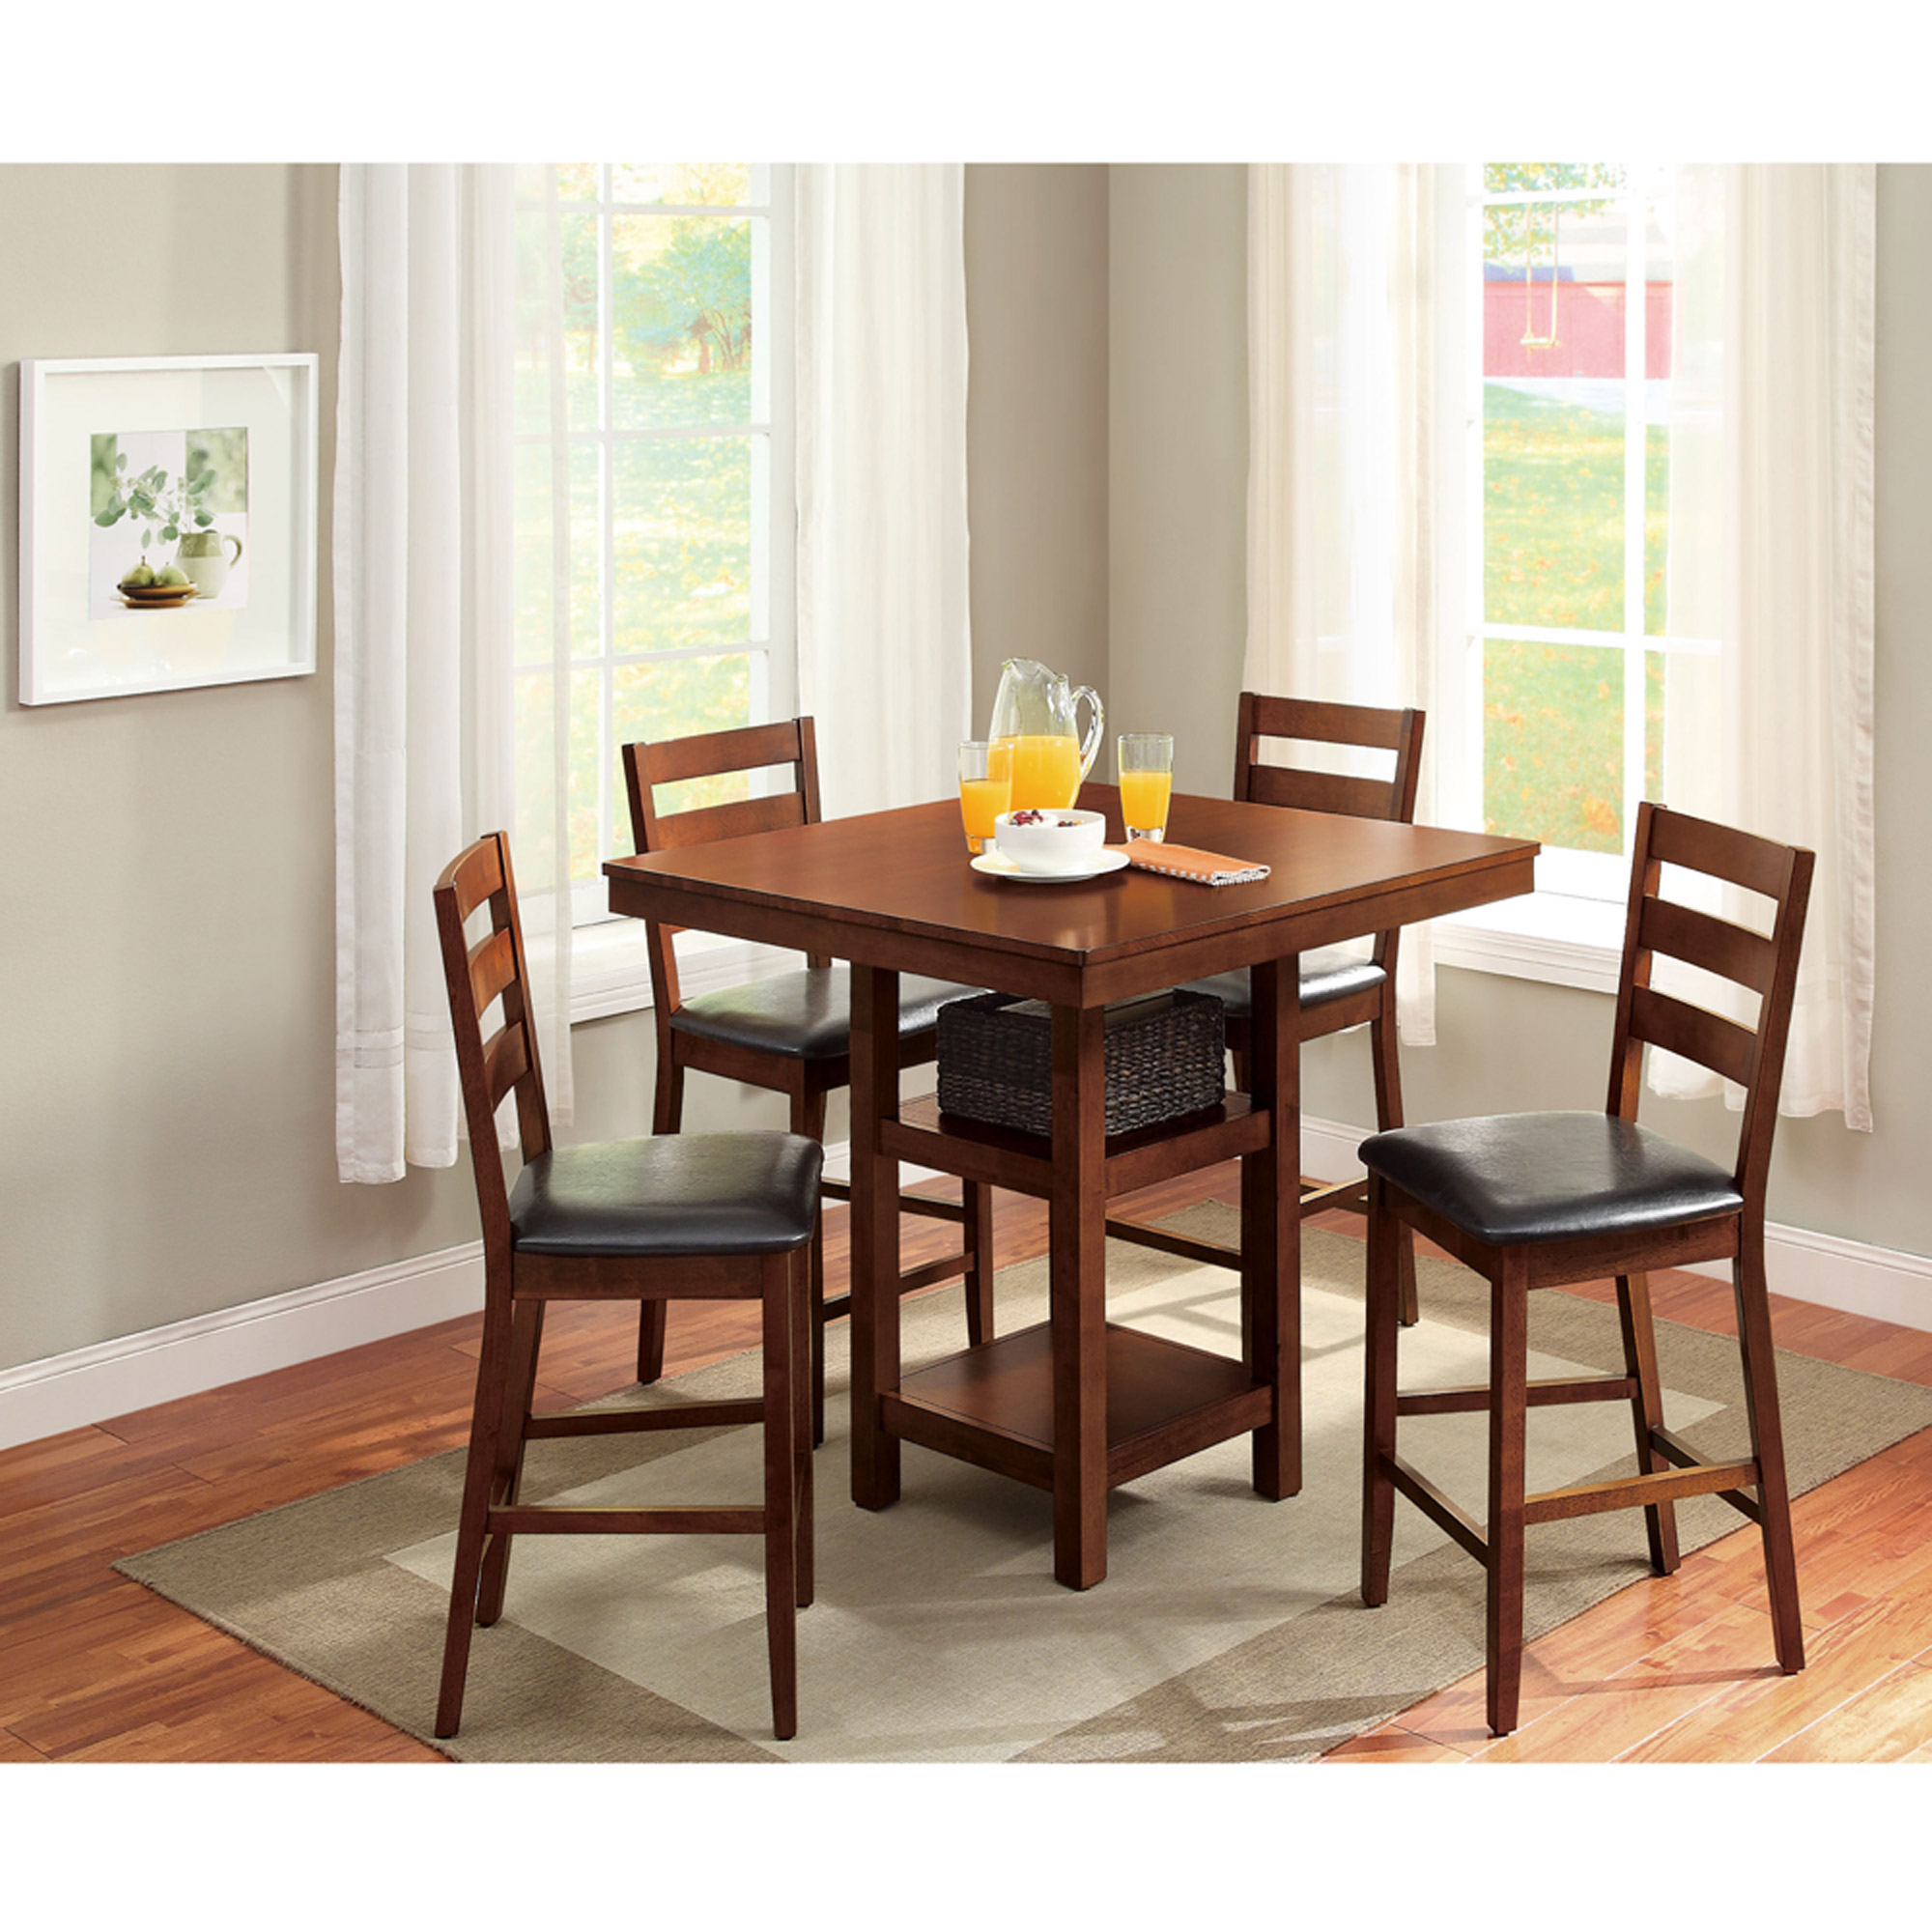 Best And Newest Better Homes & Gardens Dalton Park 5 Piece Counter Height Dining Set Intended For 5 Piece Dining Sets (#8 of 20)